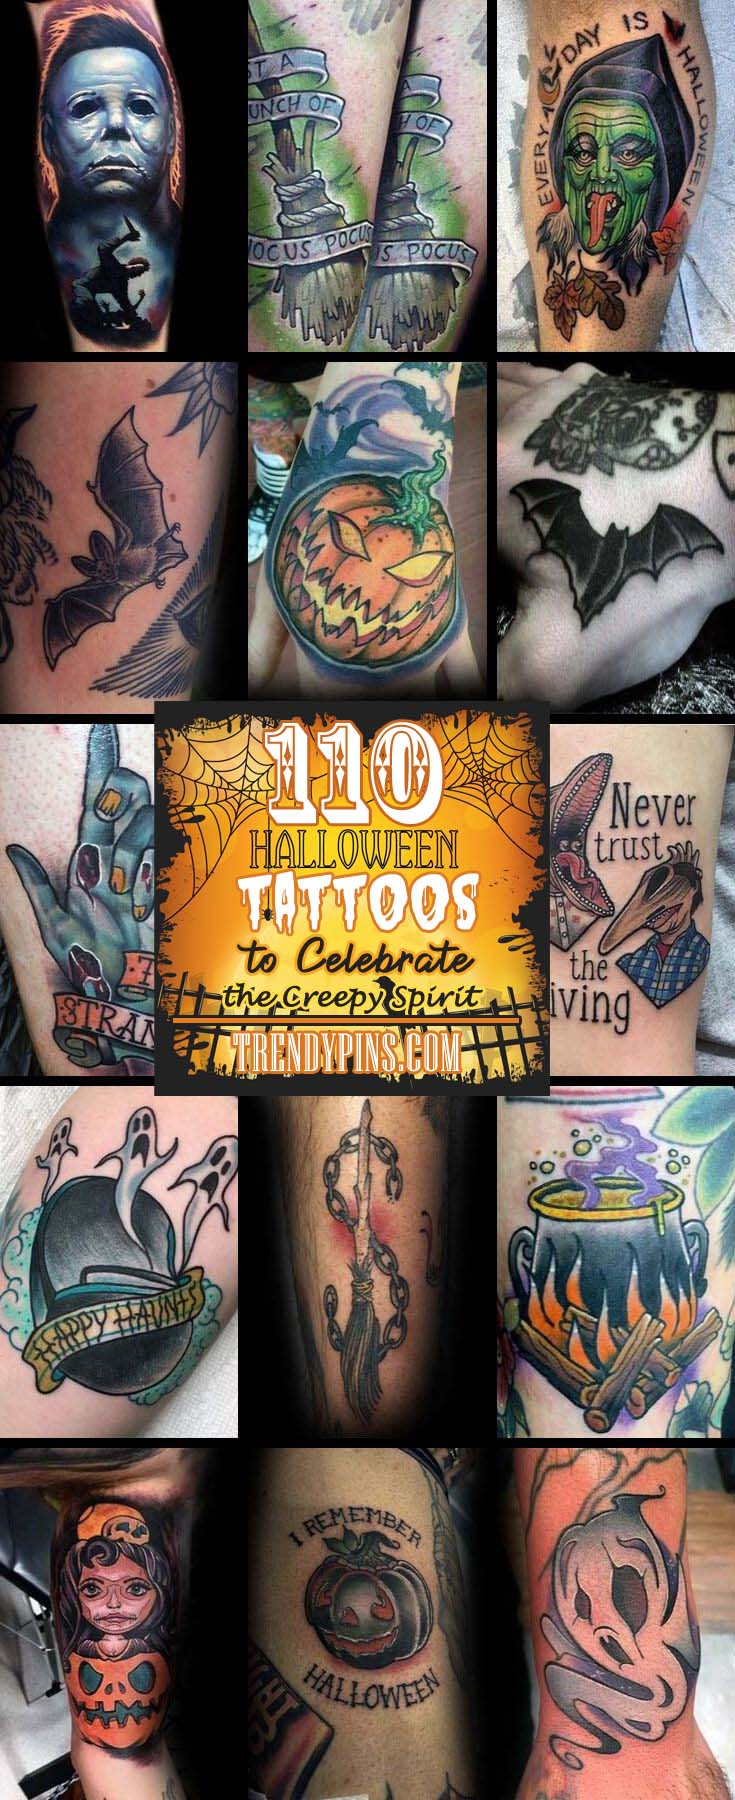 110 Halloween Tattoos to Celebrate the Creepy Spirit For All Time